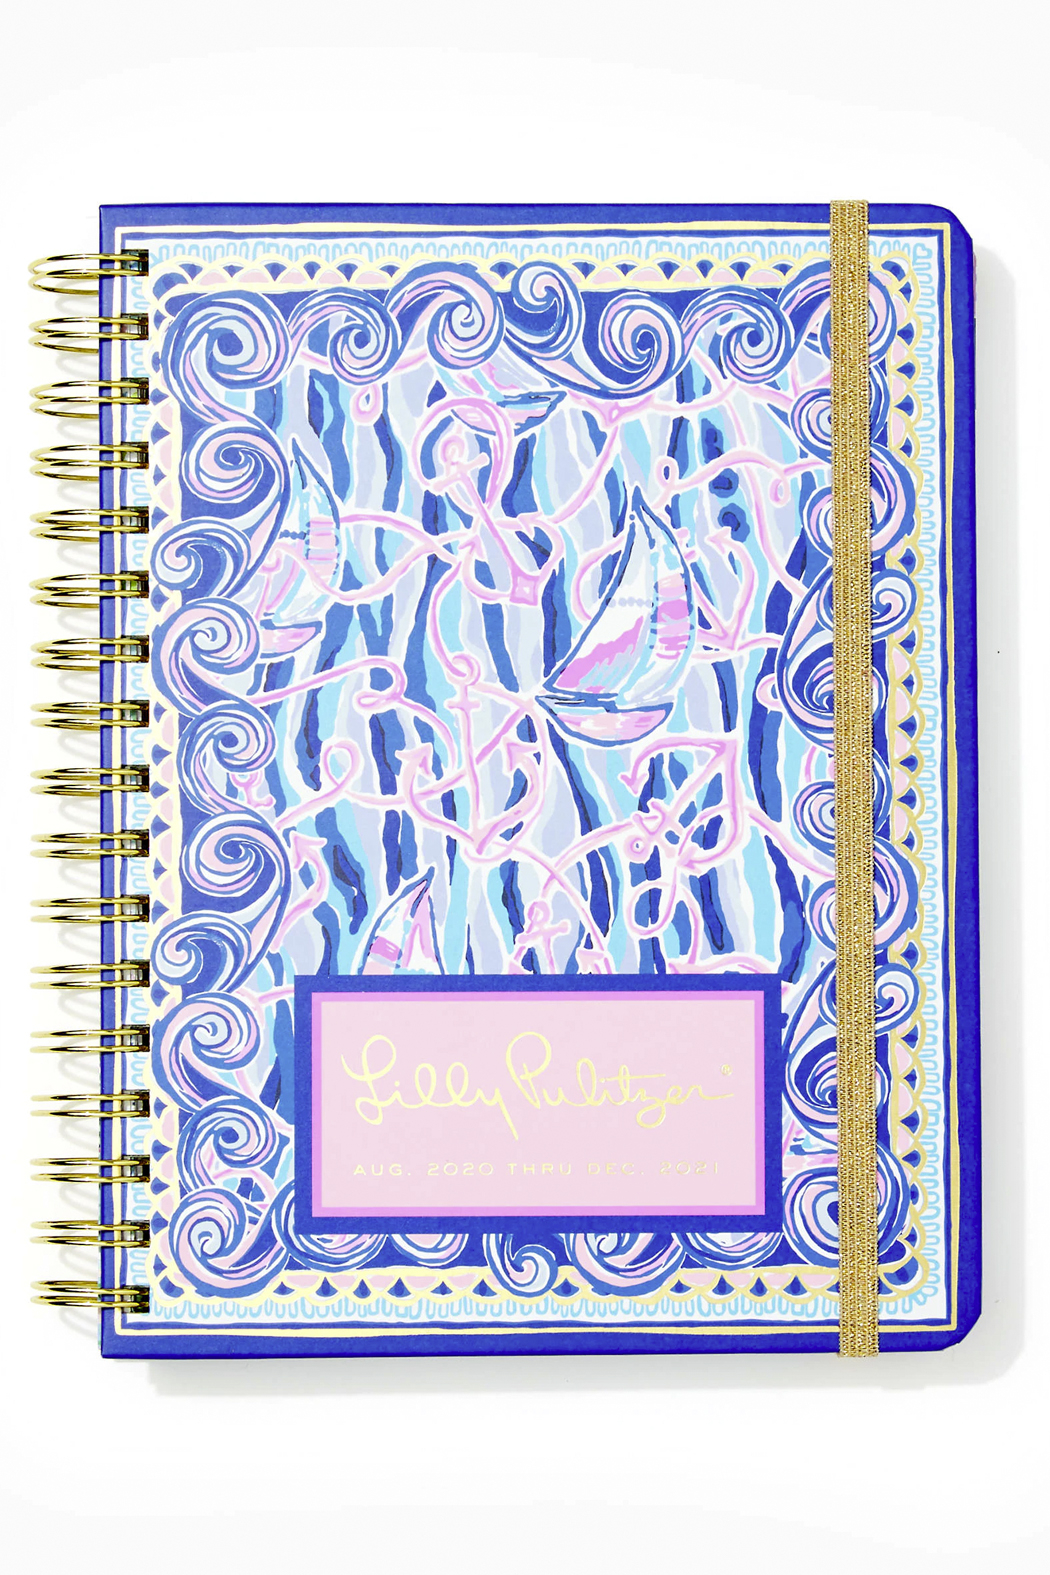 Lilly Pulitzer August 2020-December 2021 Large Agenda - 17 Month - Main Image